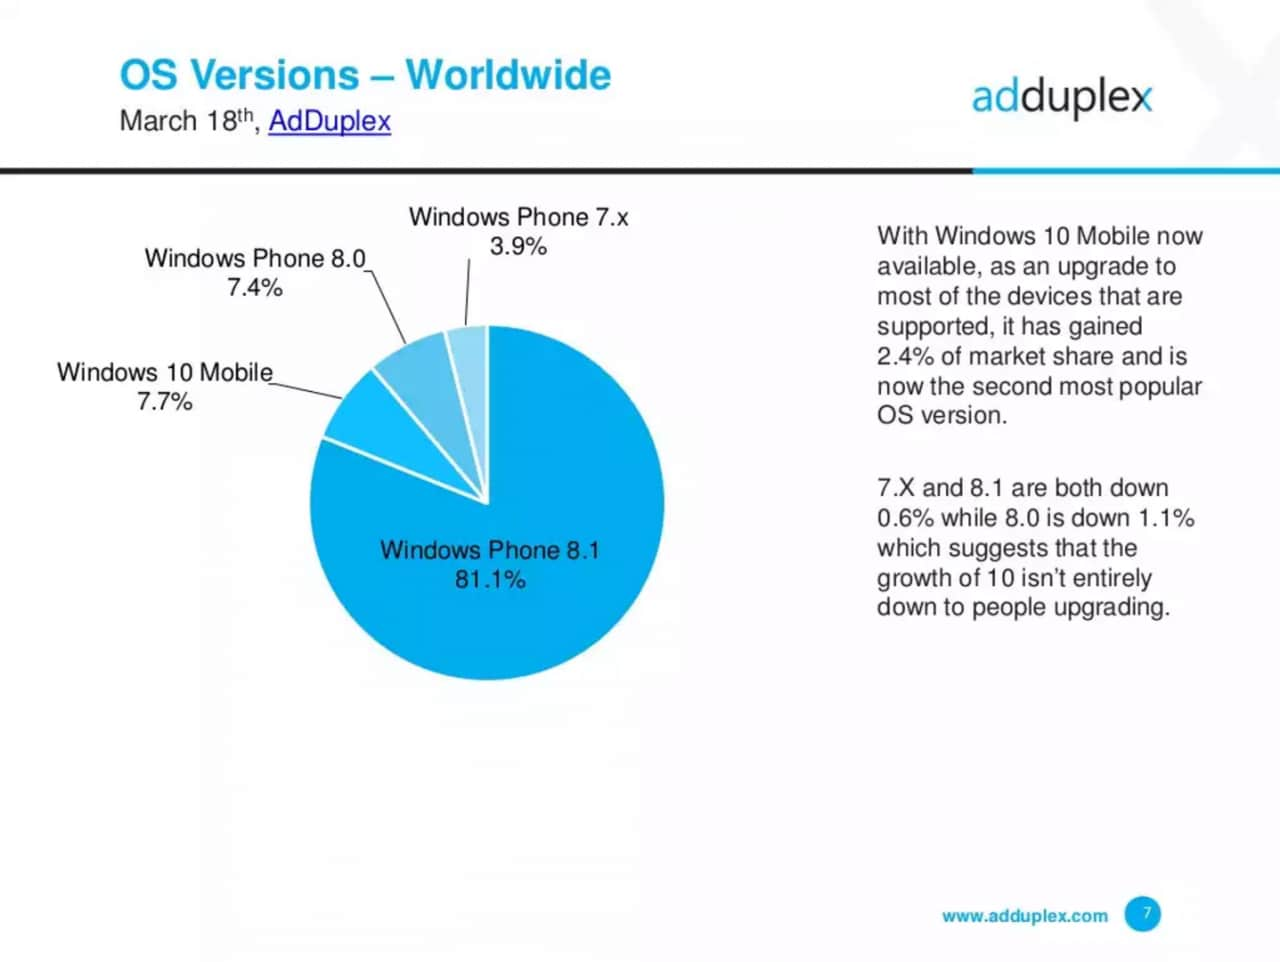 AdDuplex statistiche Windows Phone Windows 10 - 2